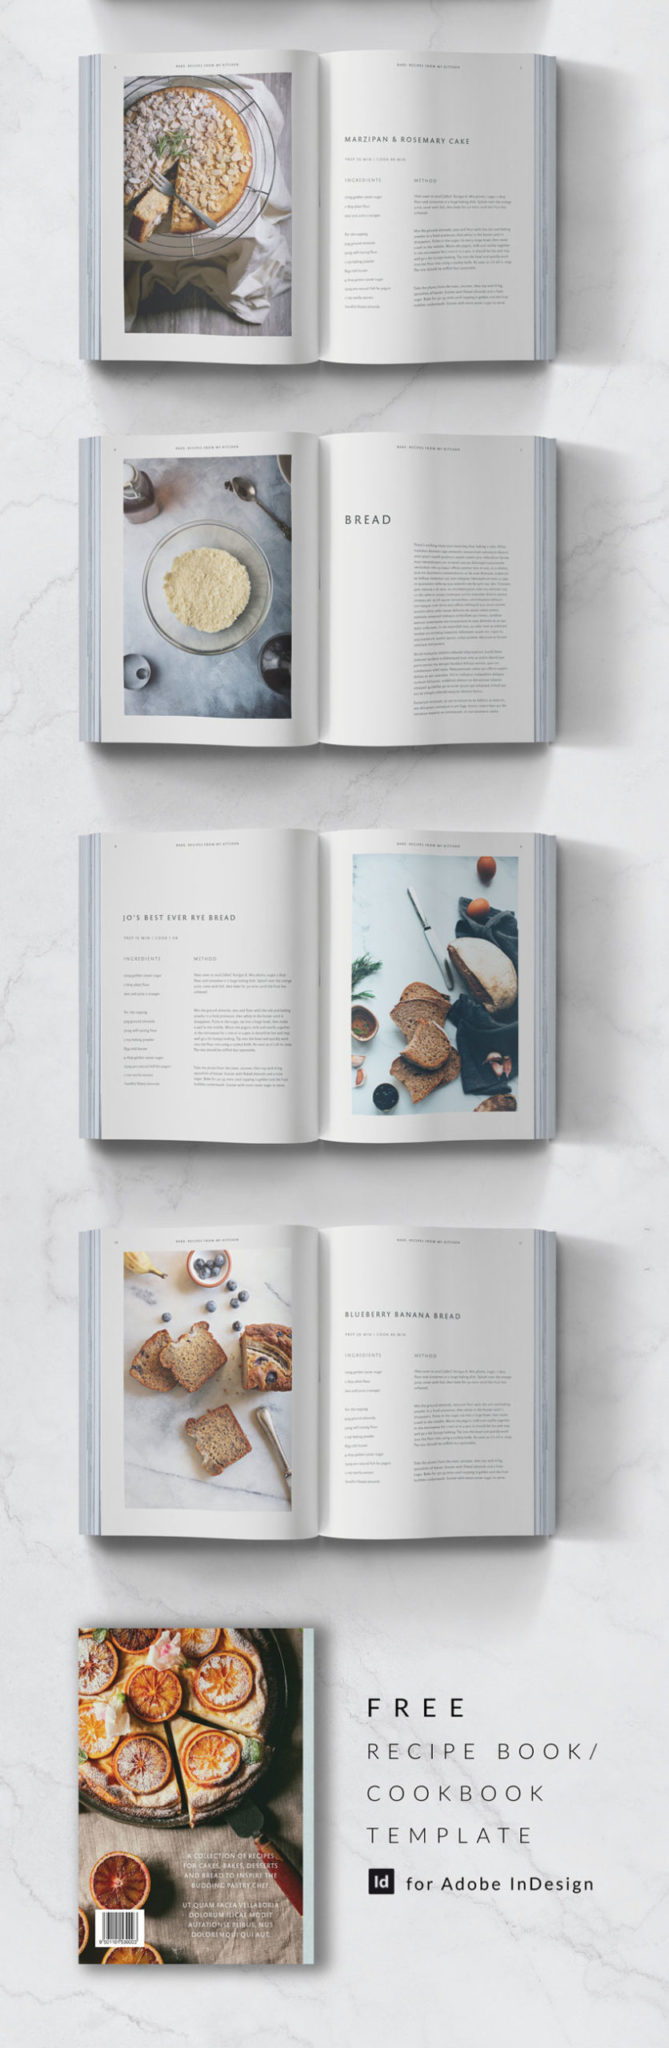 Recipe Book Template For Indesign Free Download